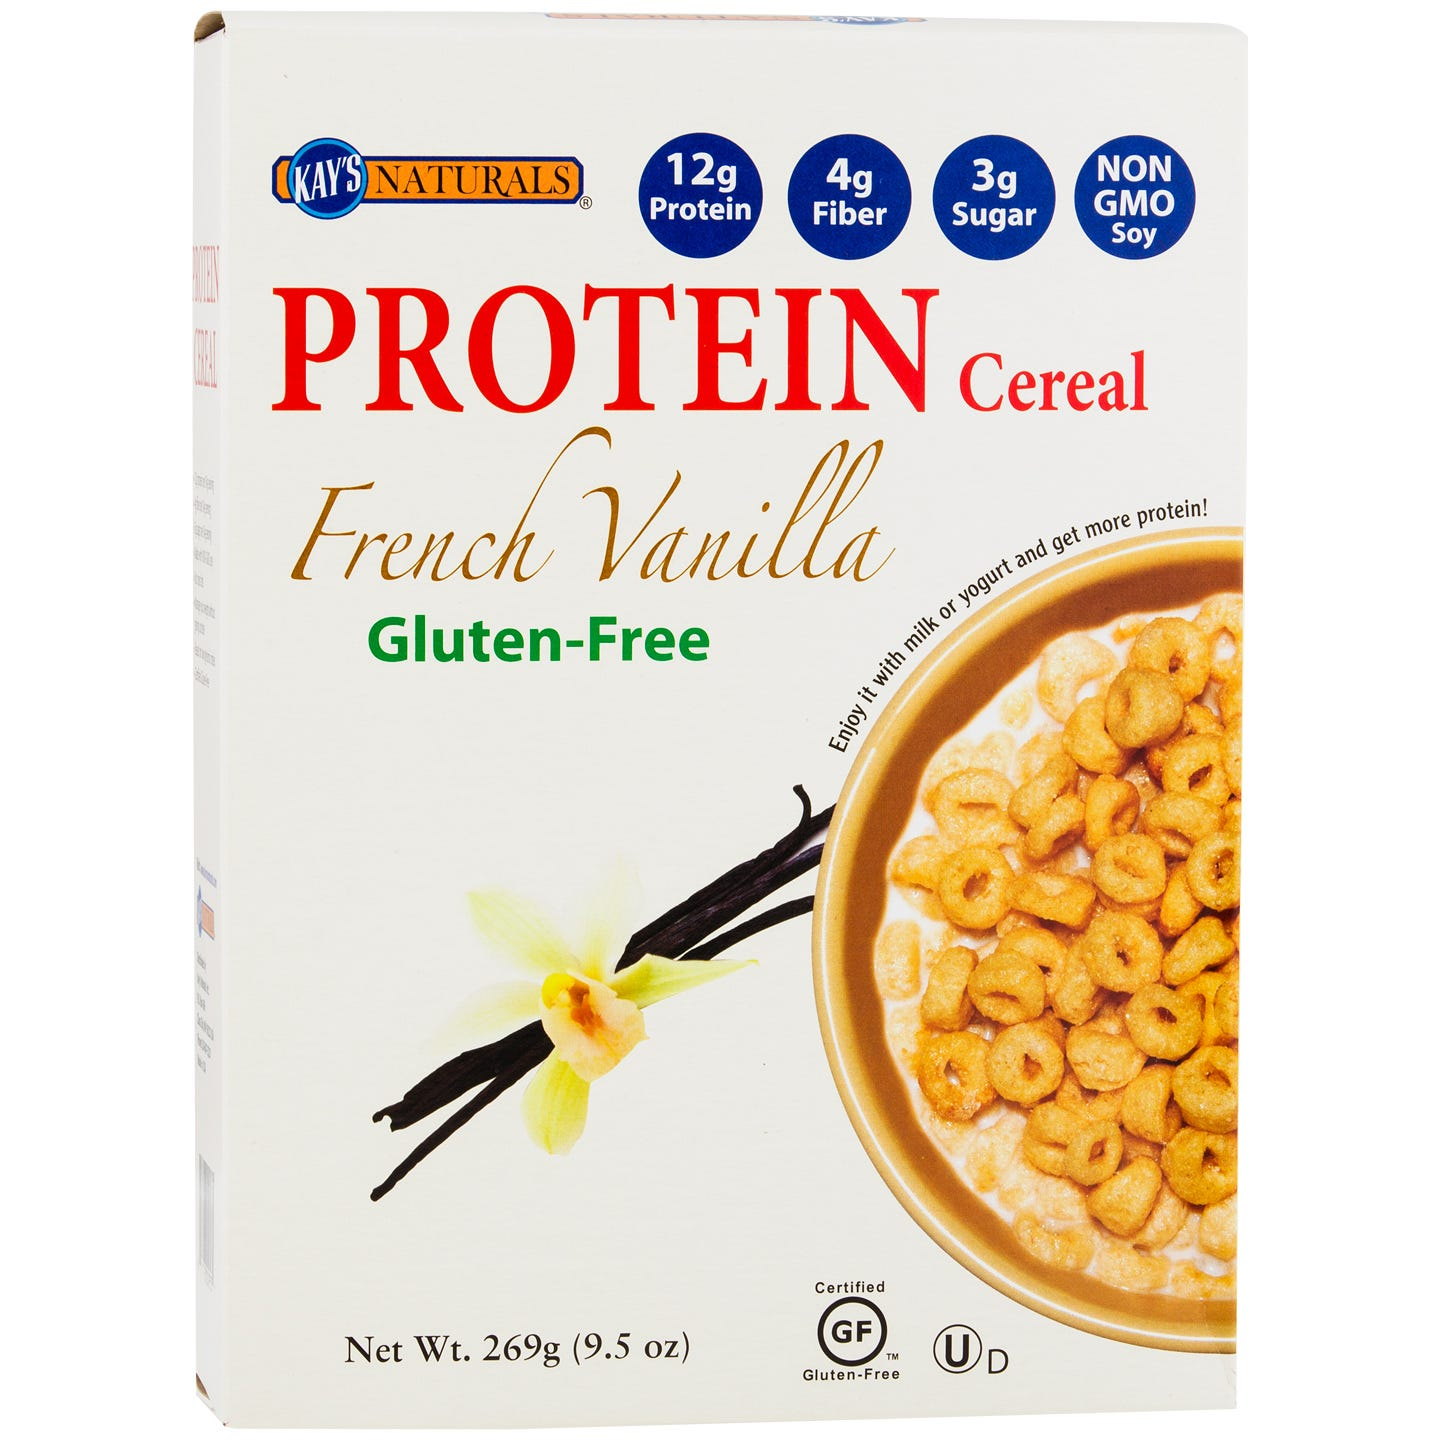 Protein Cereal French Vanilla 9.5 oz, Kay's Naturals - Rapid Diet Weight Loss Products Shop